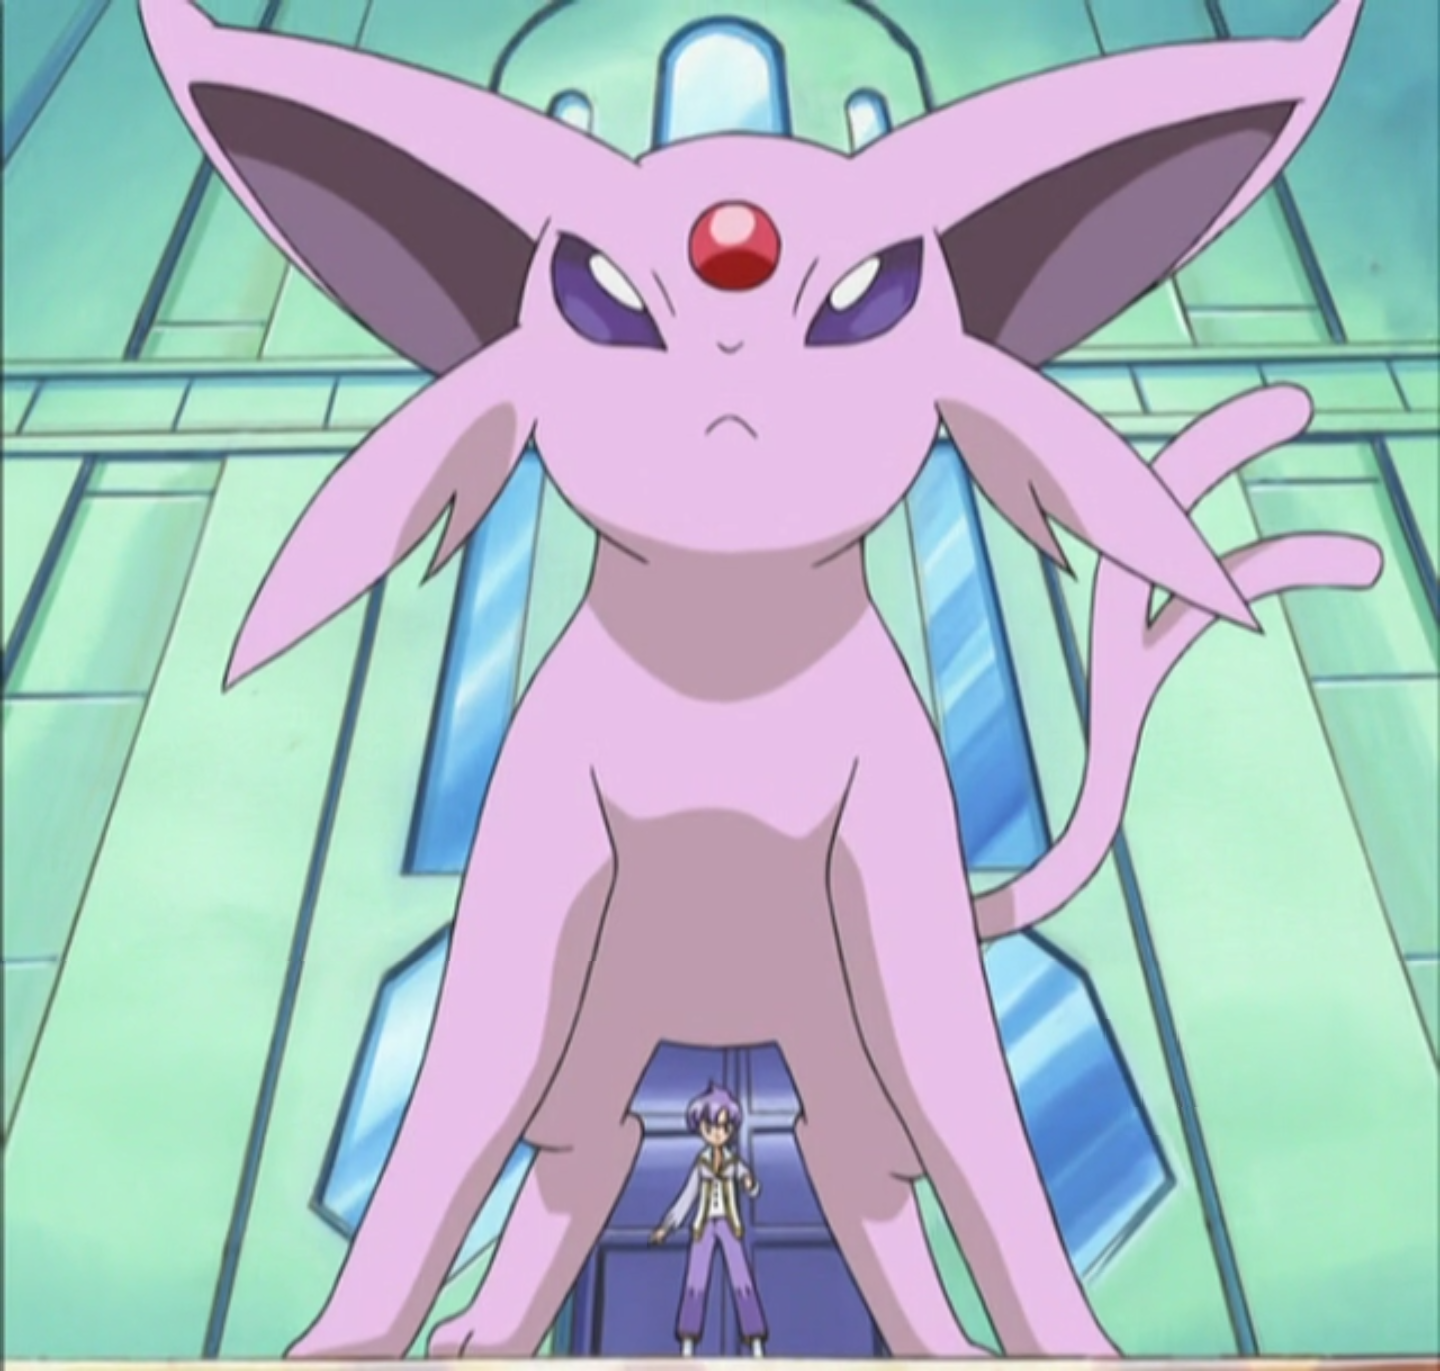 Espeon, Anabel's favourite Pokémon, was used against Ash in his rematch against Anabel.